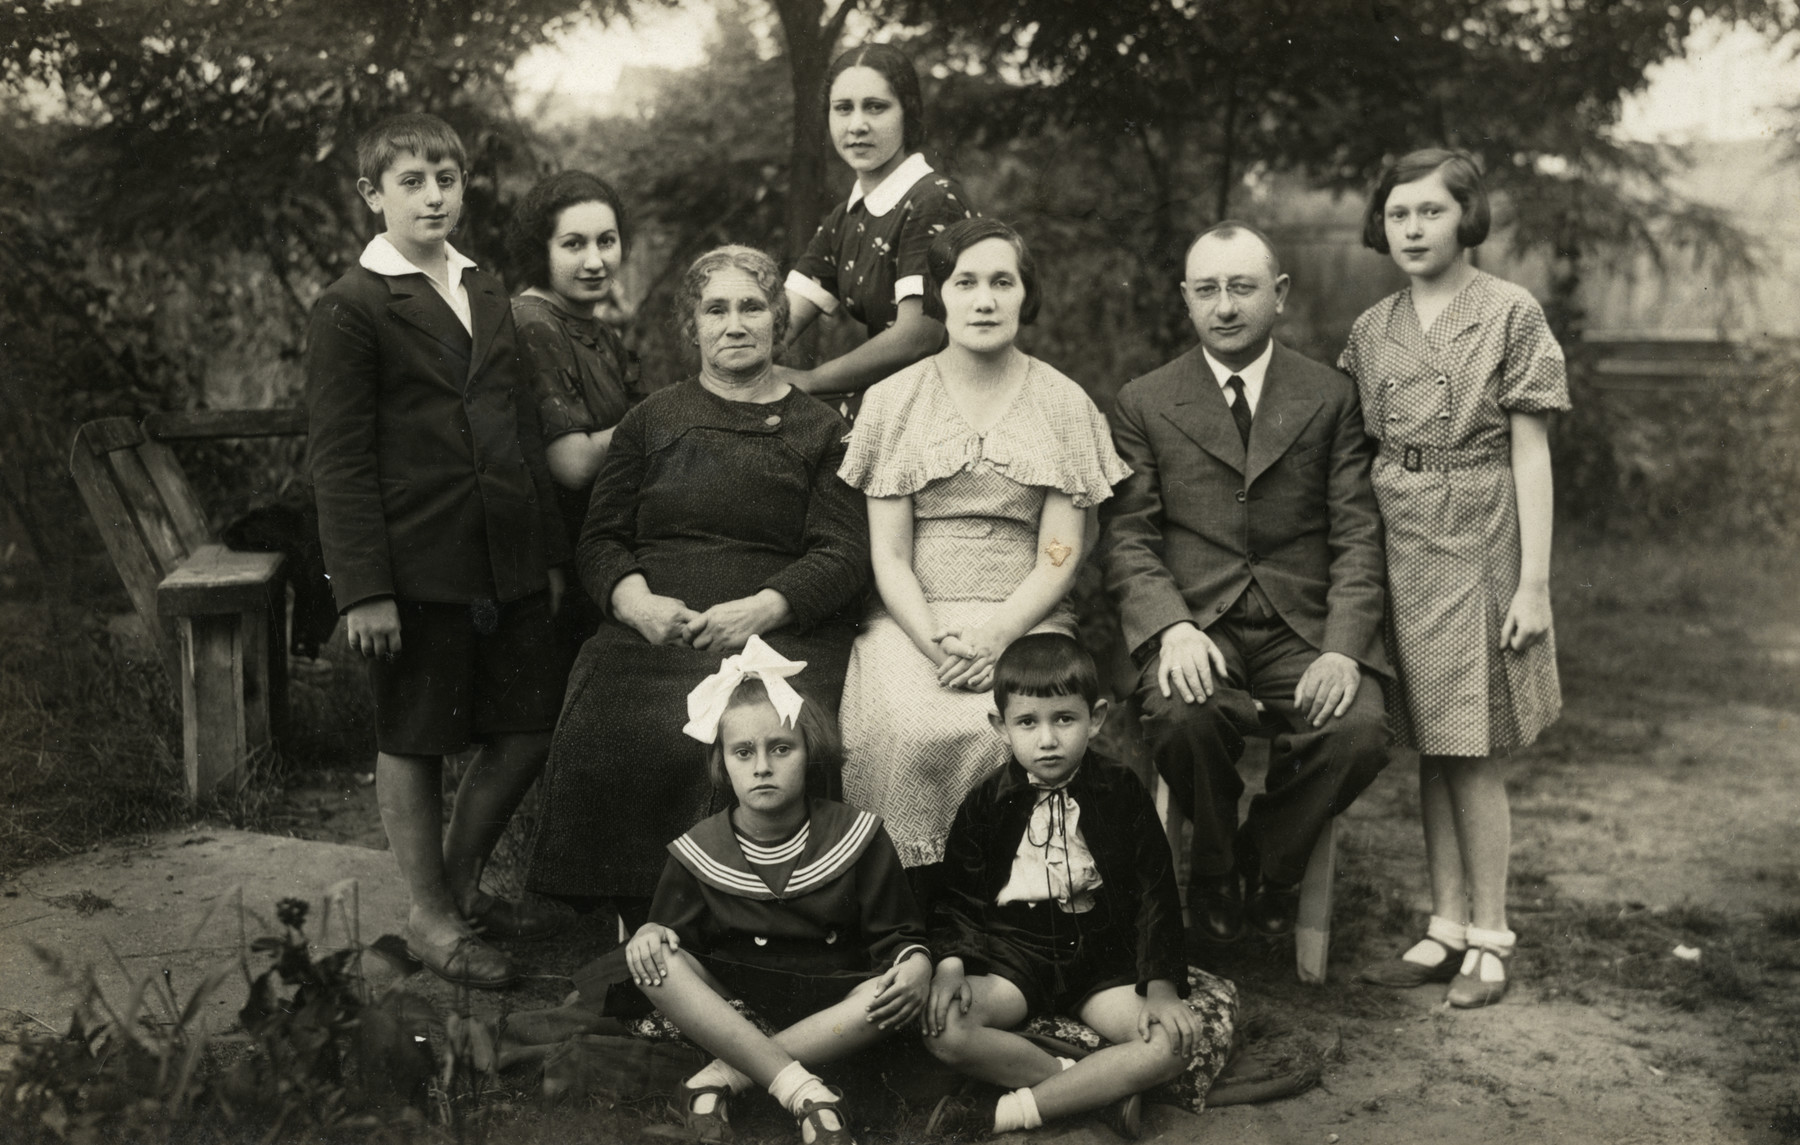 Group portrait of the extended Krakowska family at their summer dacha.  Ewa Krakowska's parents are in the middle, Ewa is standing to the  right of her father, and her brother Julik is seated in front., right.  Berl Rabinovitch is standing on the left.